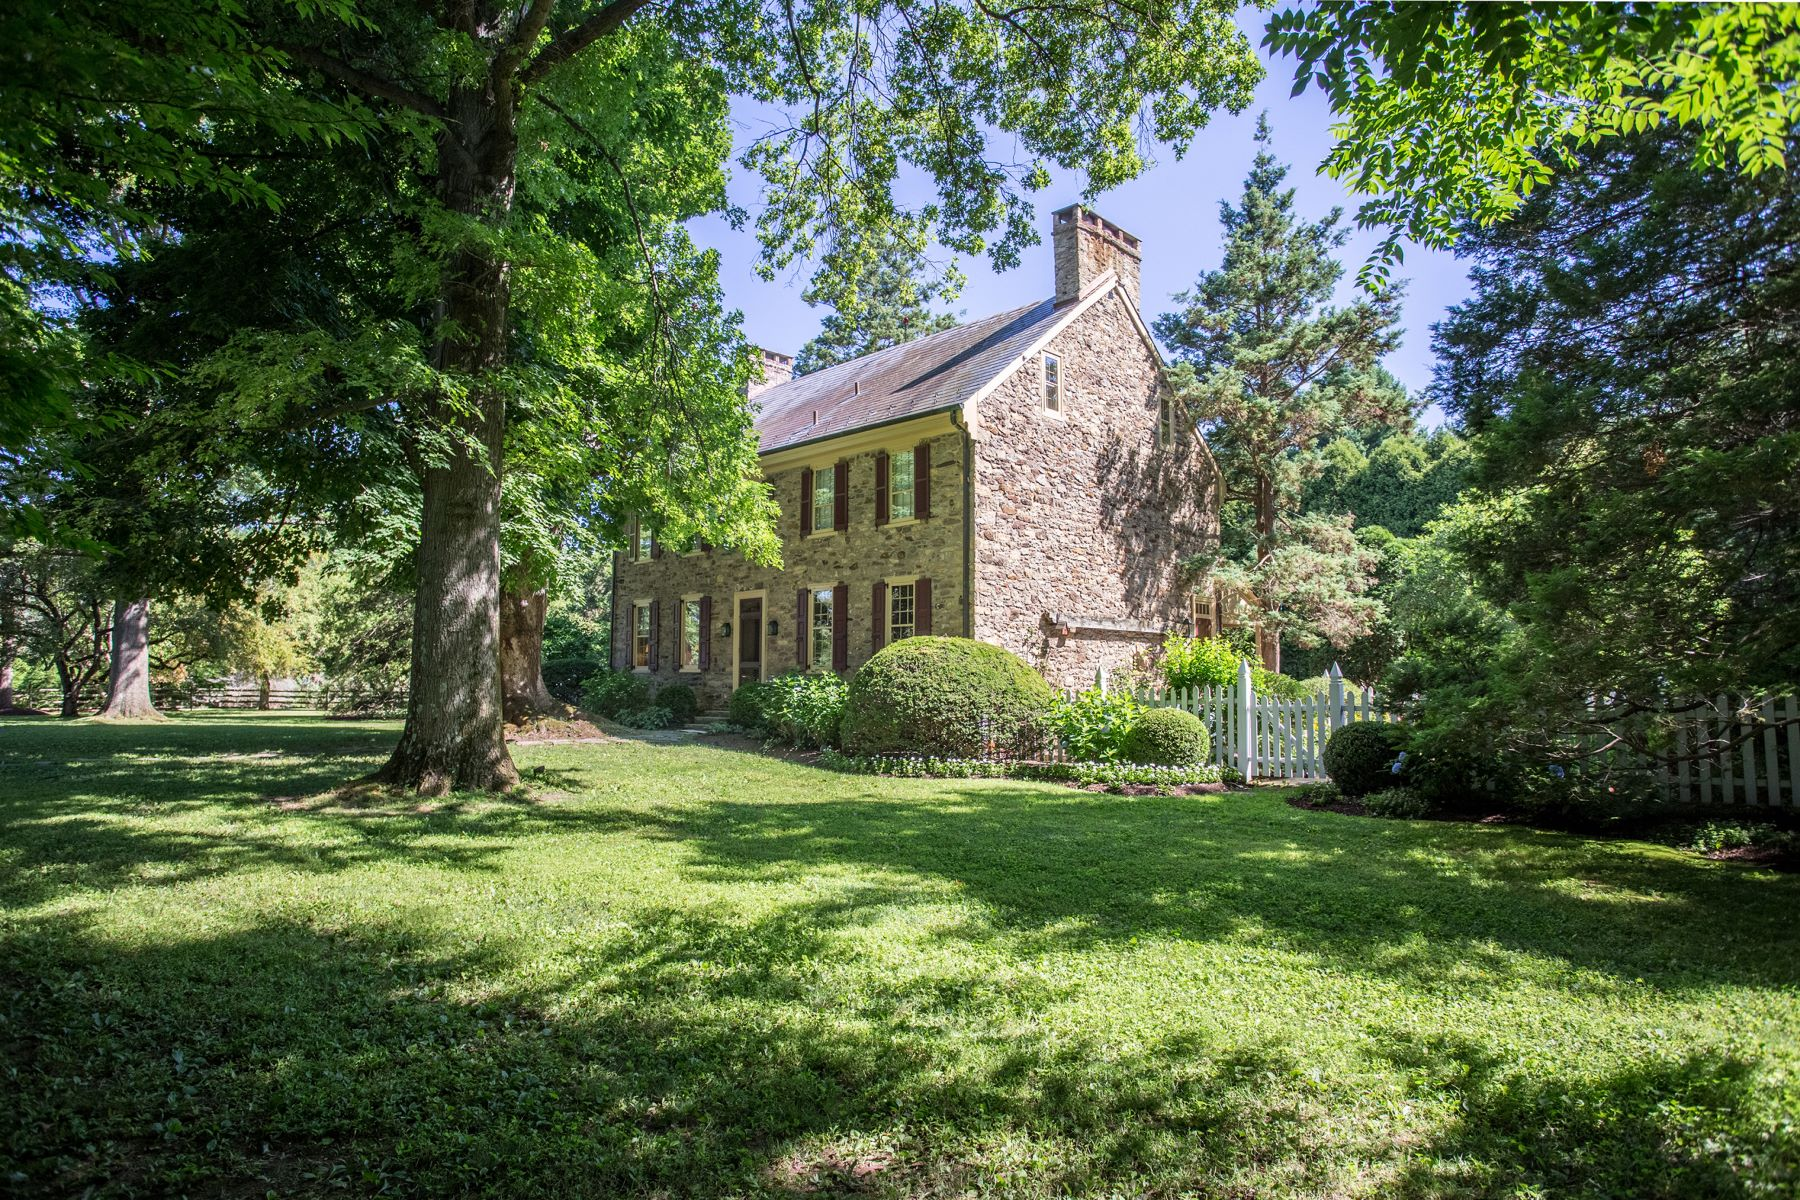 Single Family Home for Sale at 5541 Carversville Rd Doylestown, Pennsylvania 18902 United States